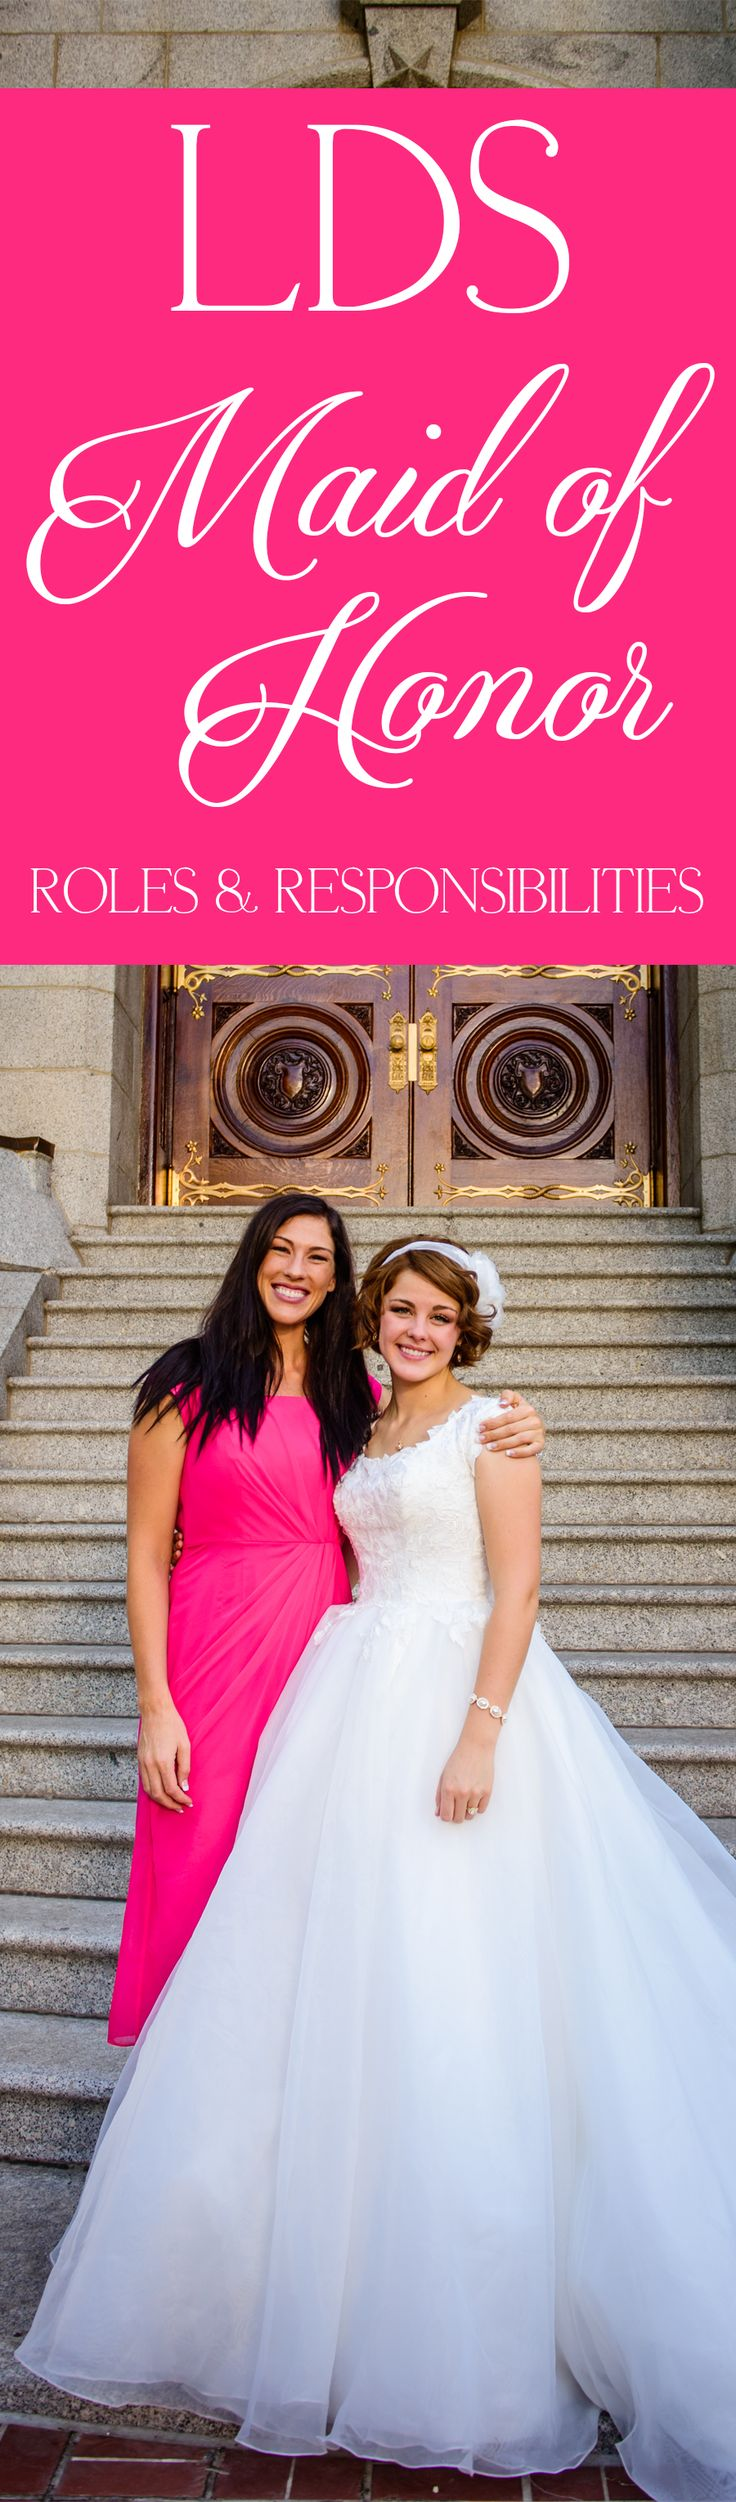 Lds Maid Of Honor Roles Responsibilities Wedding